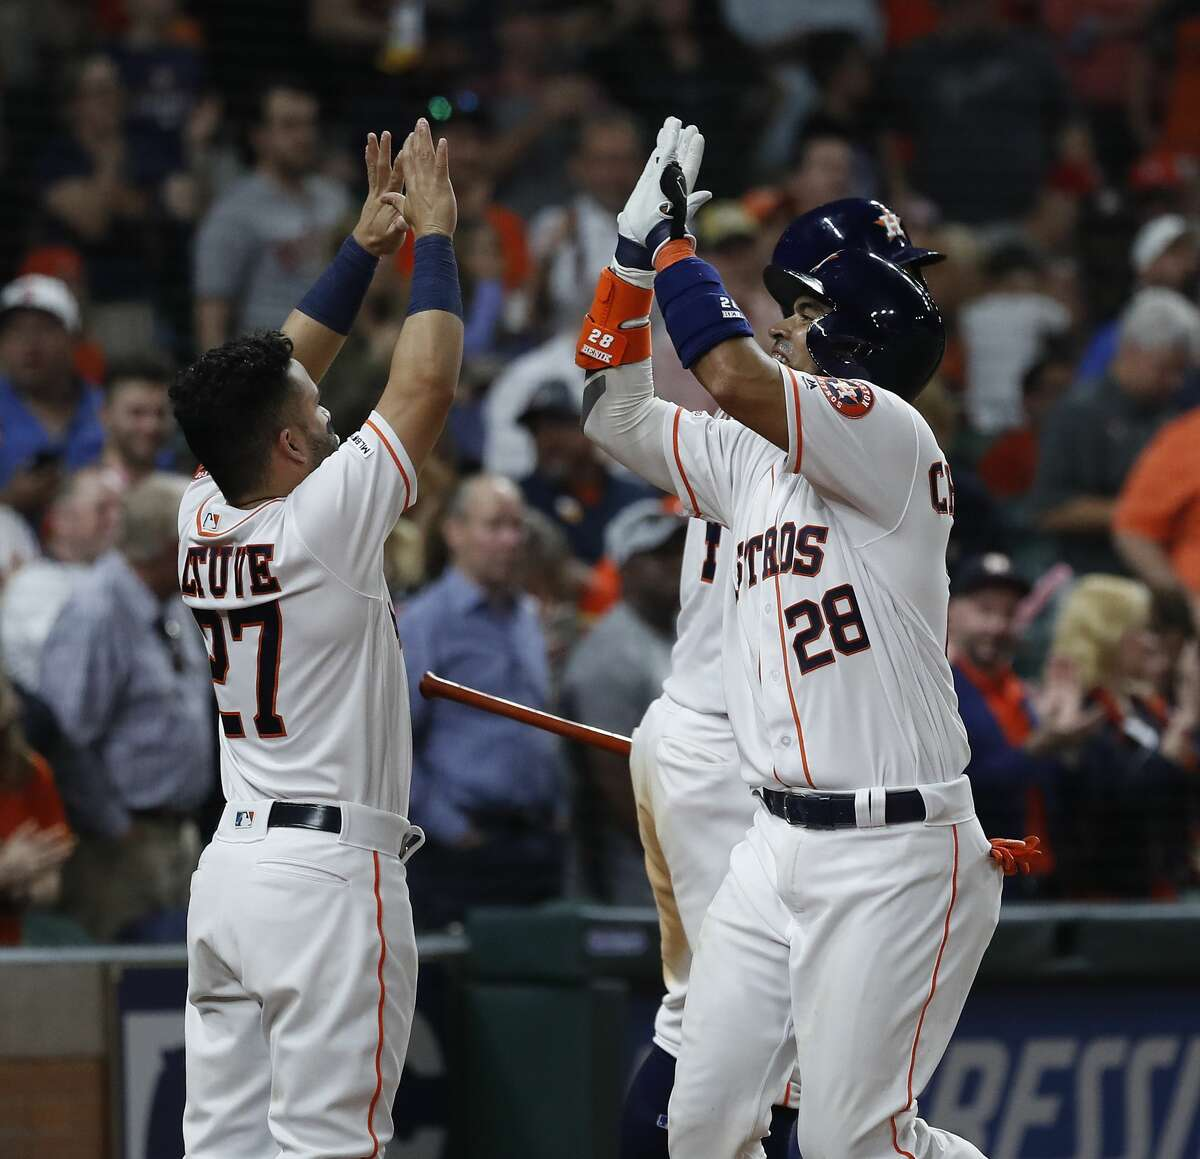 Houston Astros catcher Robinson Chirinos (28) celebrates with George Springer (4) and Jose Altuve (27) after hitting his home run during the sixth inning of an MLB at Minute Maid Park, Saturday, April 6, 2019, in Houston.